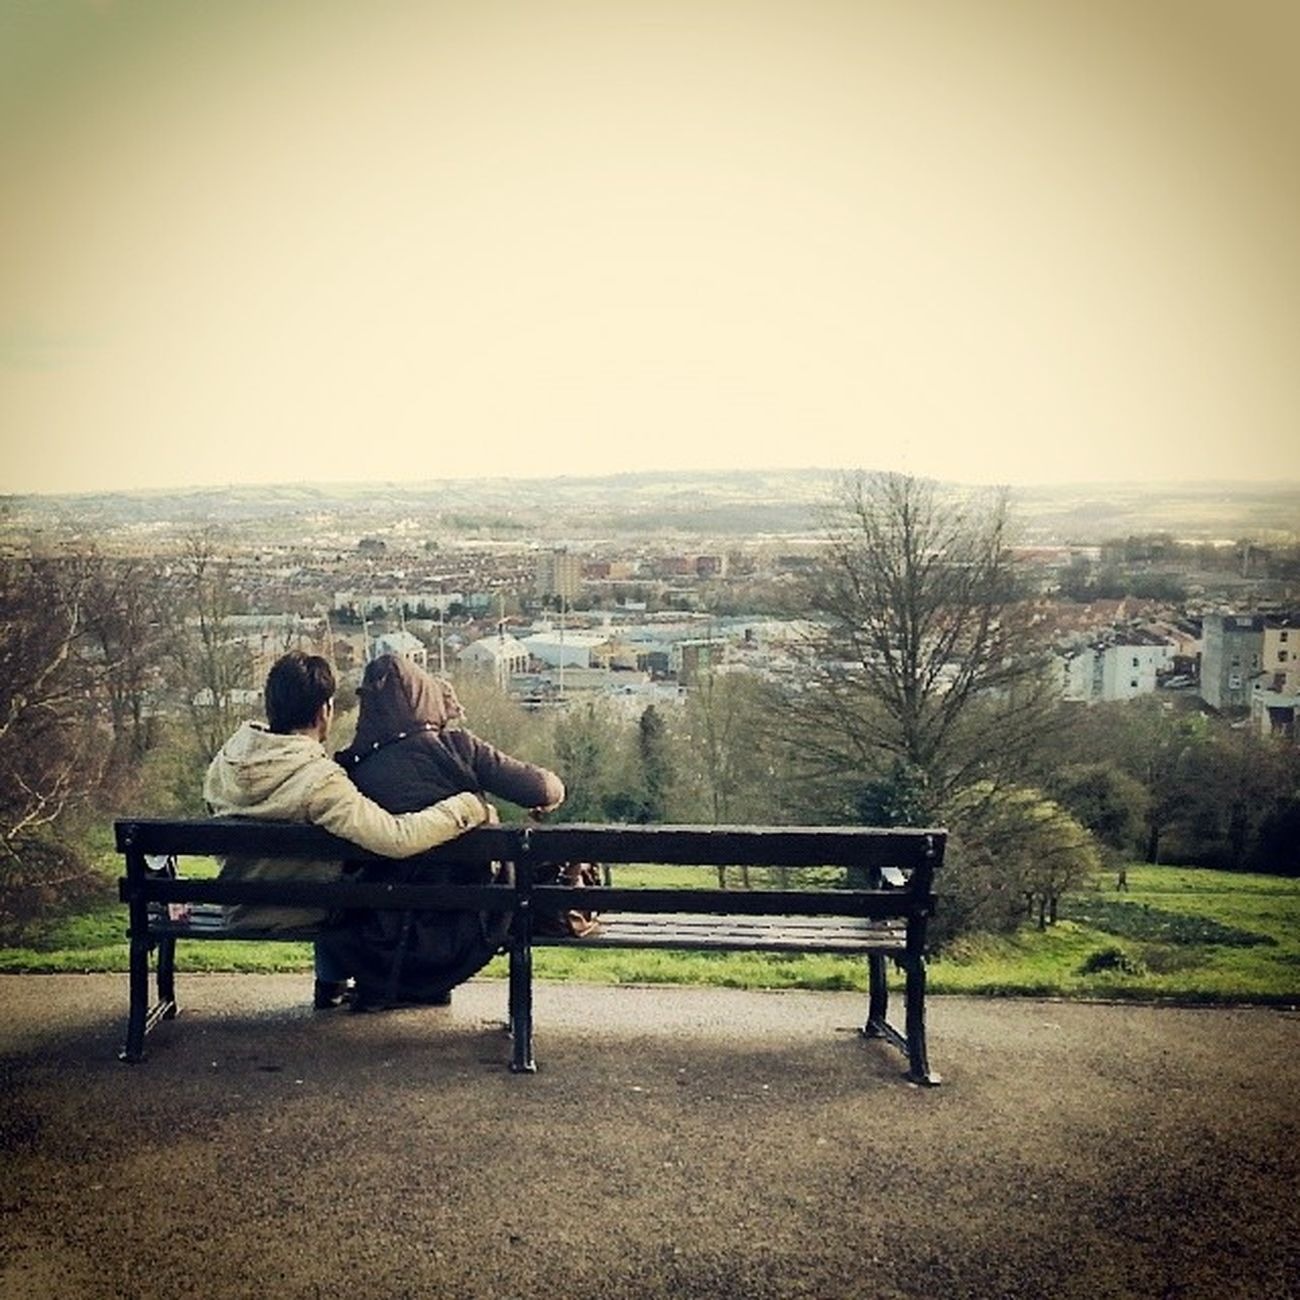 Lovers on a bench. Bristol Cabottower Love Cute couple sorryifthisisyoubecauseitookthephotowithoutyouknowing